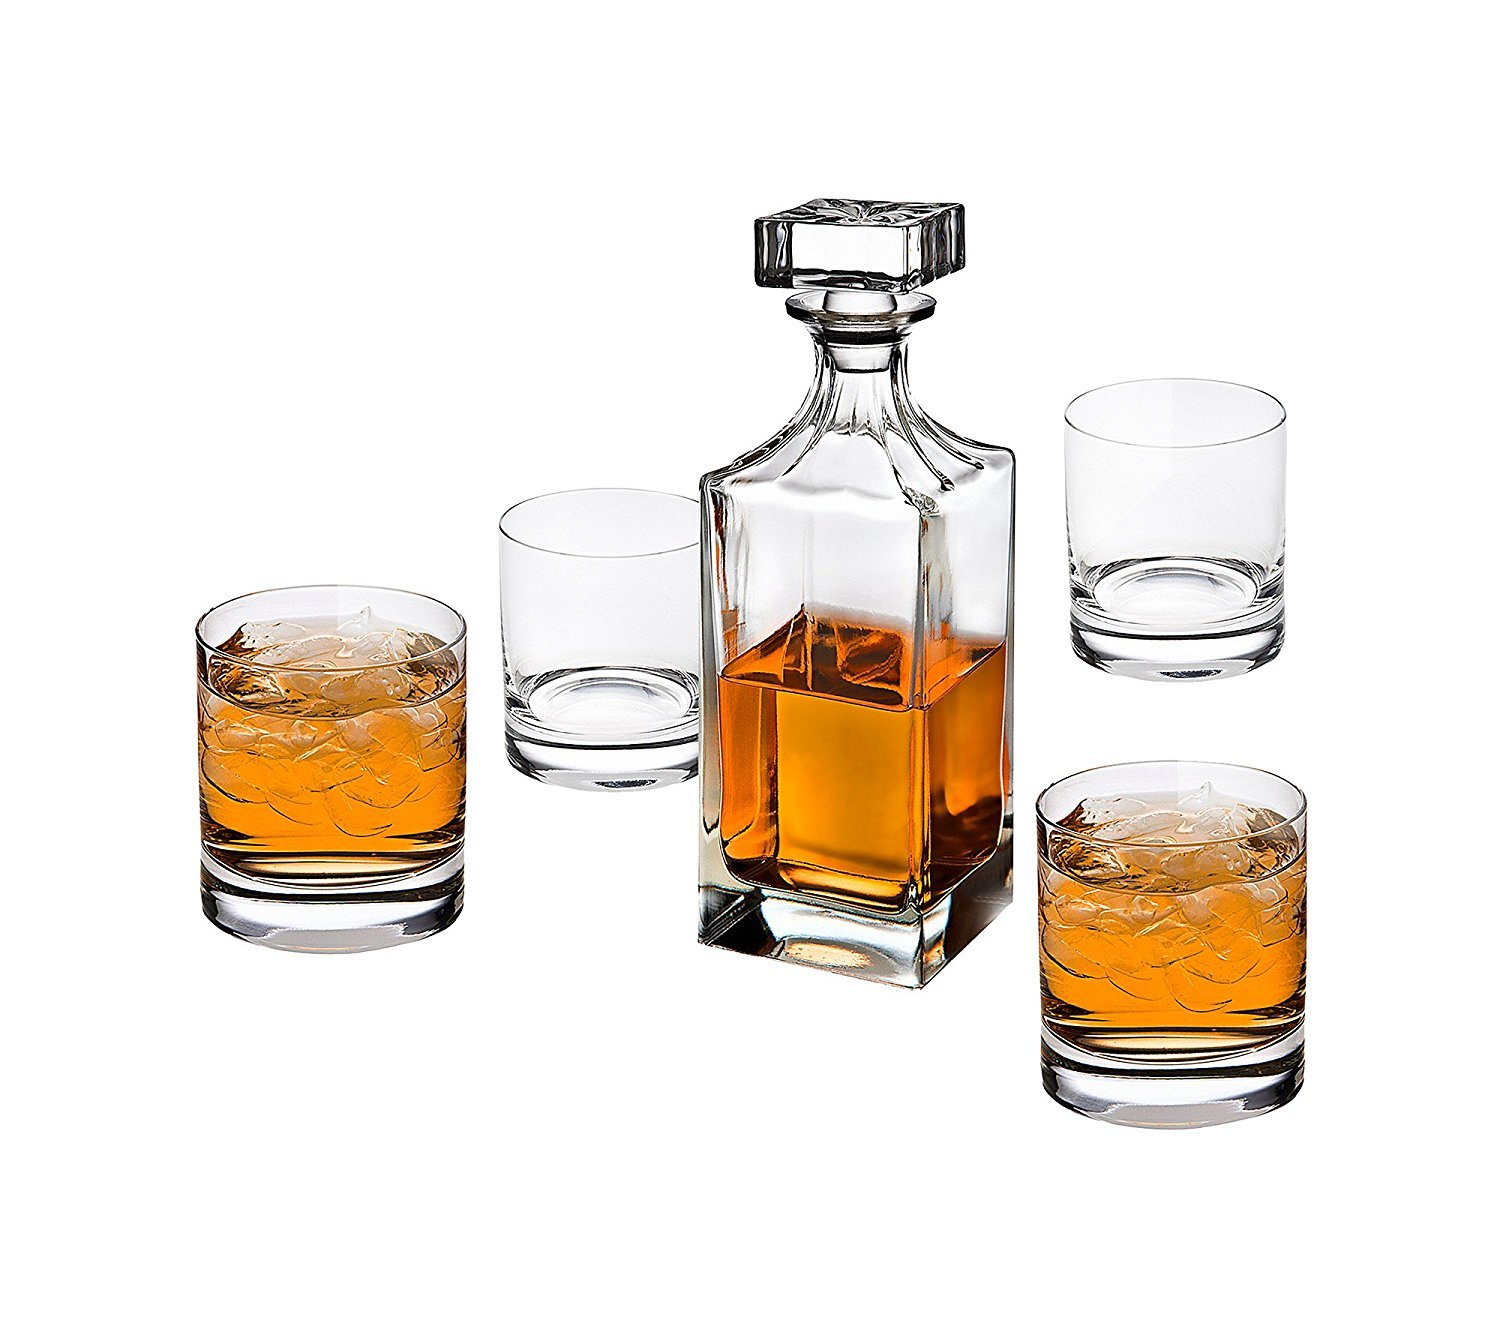 Godinger Glass 5-Piece Social Whiskey Decanter and Double Old Fashioned Set